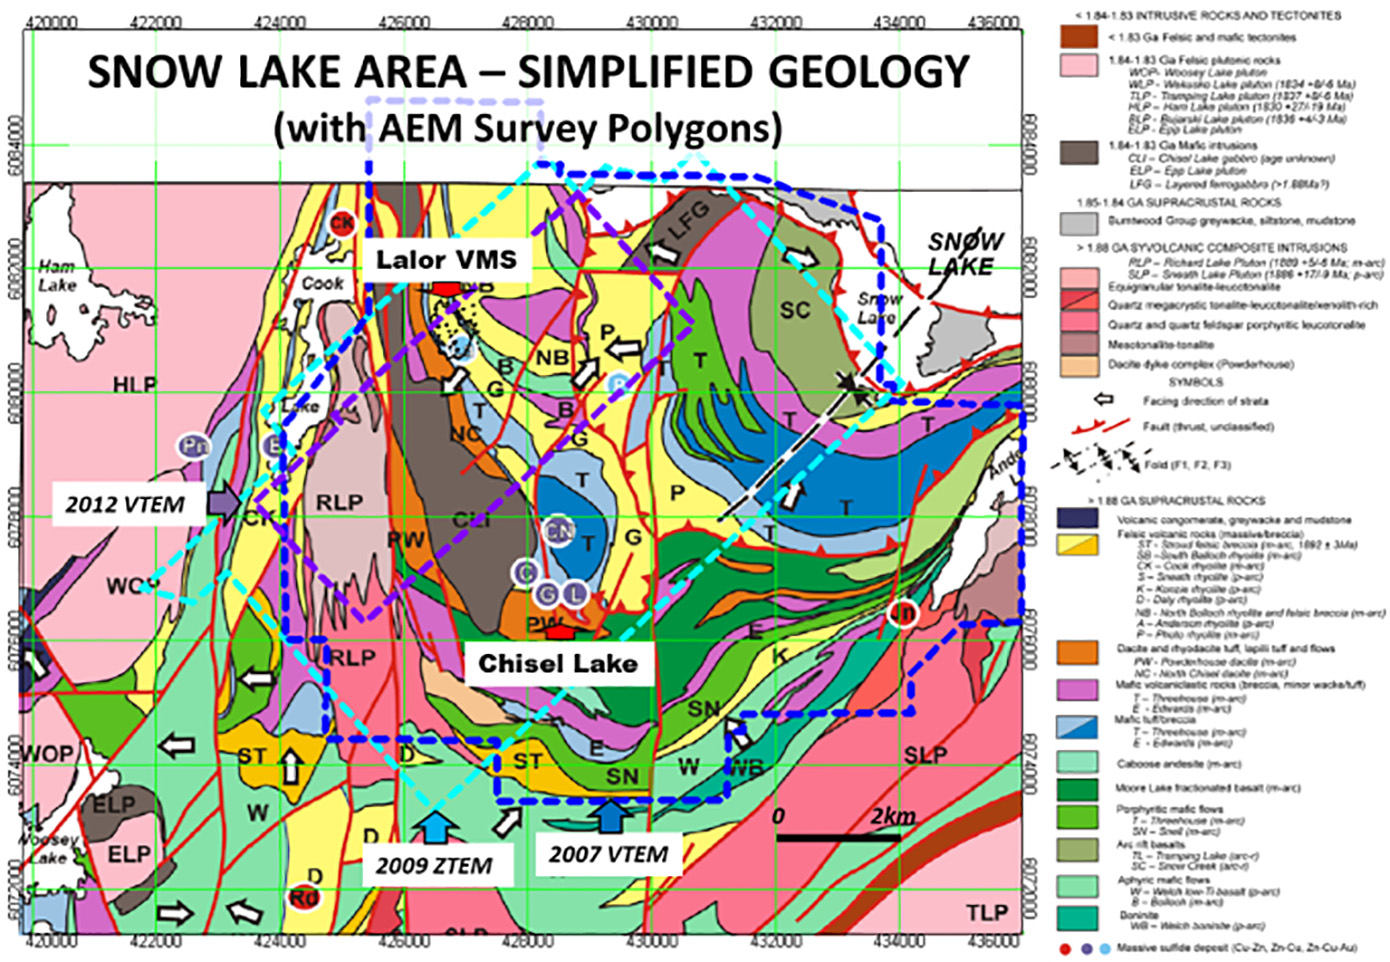 geology of flin flon area The term flin flon-glennie complex has been assigned to this volcano-sedimentary-plutonic package extending continuously from flin flon to the lac la ronge-reindeer lake area in the west and occurring discontinuously to the north due to structural imbrication and fold interference.